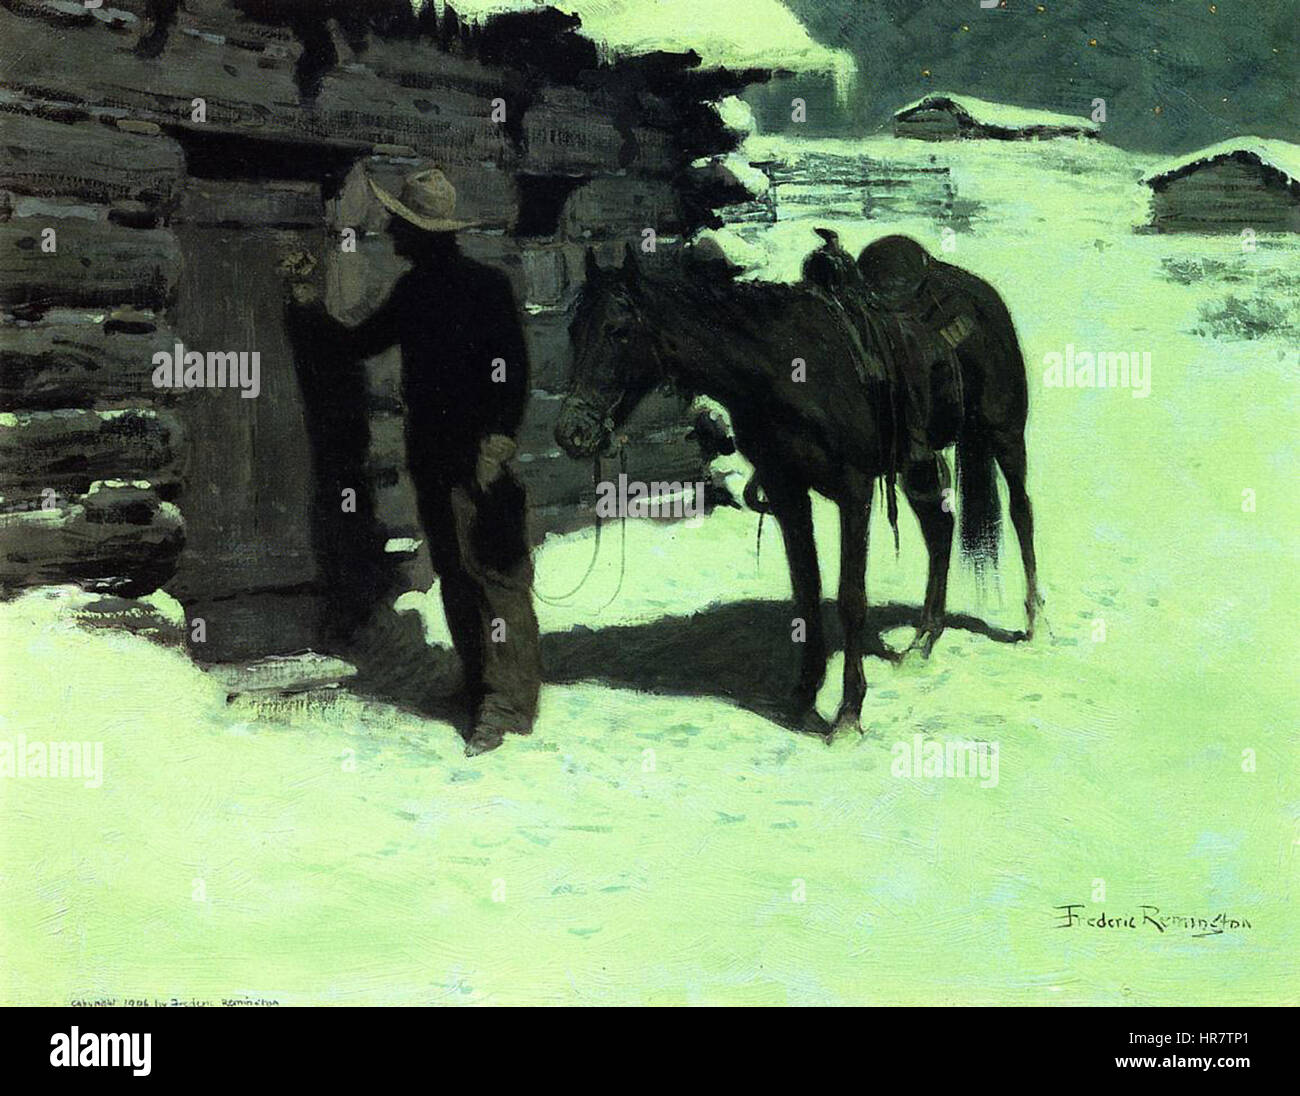 The Belated Traveler Frederic Remington - Stock Image